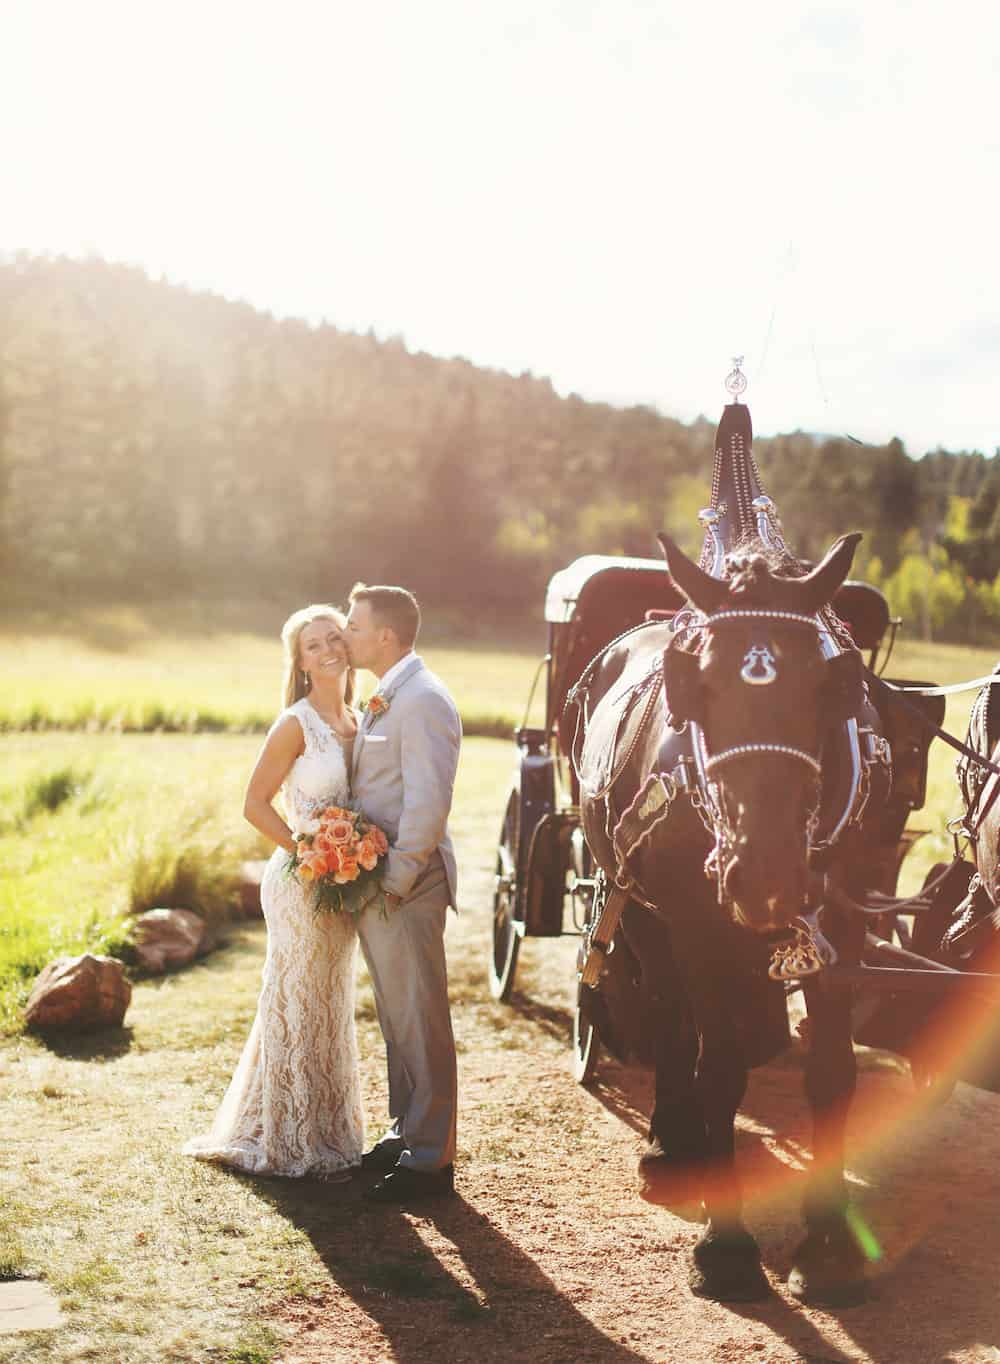 View More: http://catherinejeter.pass.us/brian--taylor-wedding